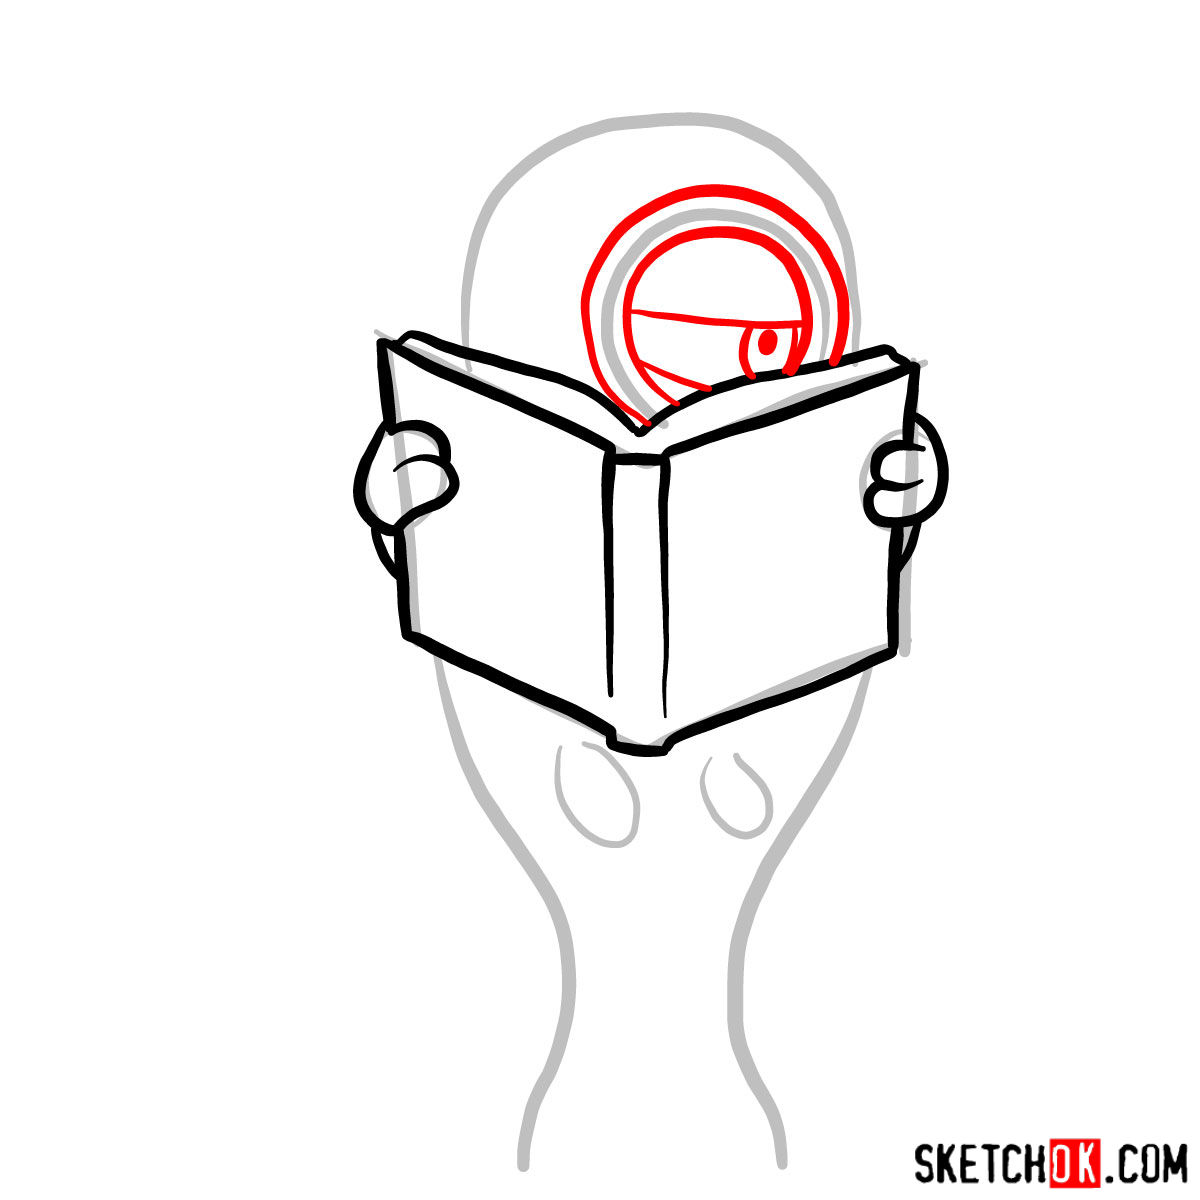 How to draw minion in the toilet reading a book - step 04